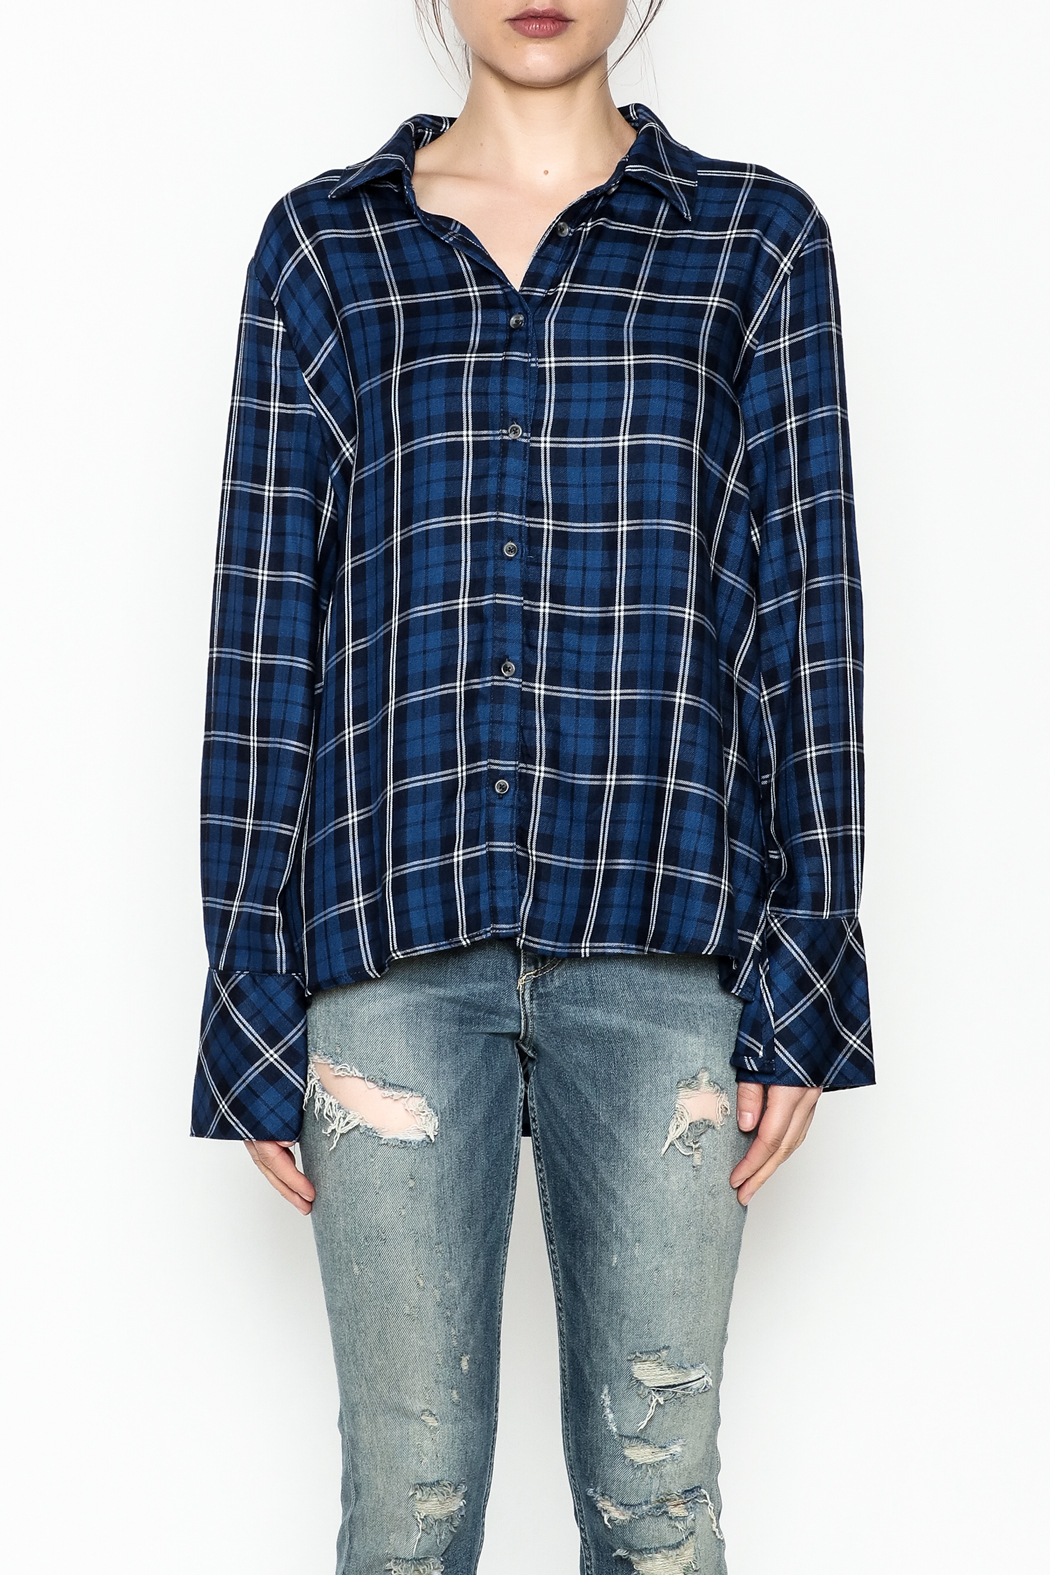 Current Air Plaid Button Down Shirt - Front Full Image